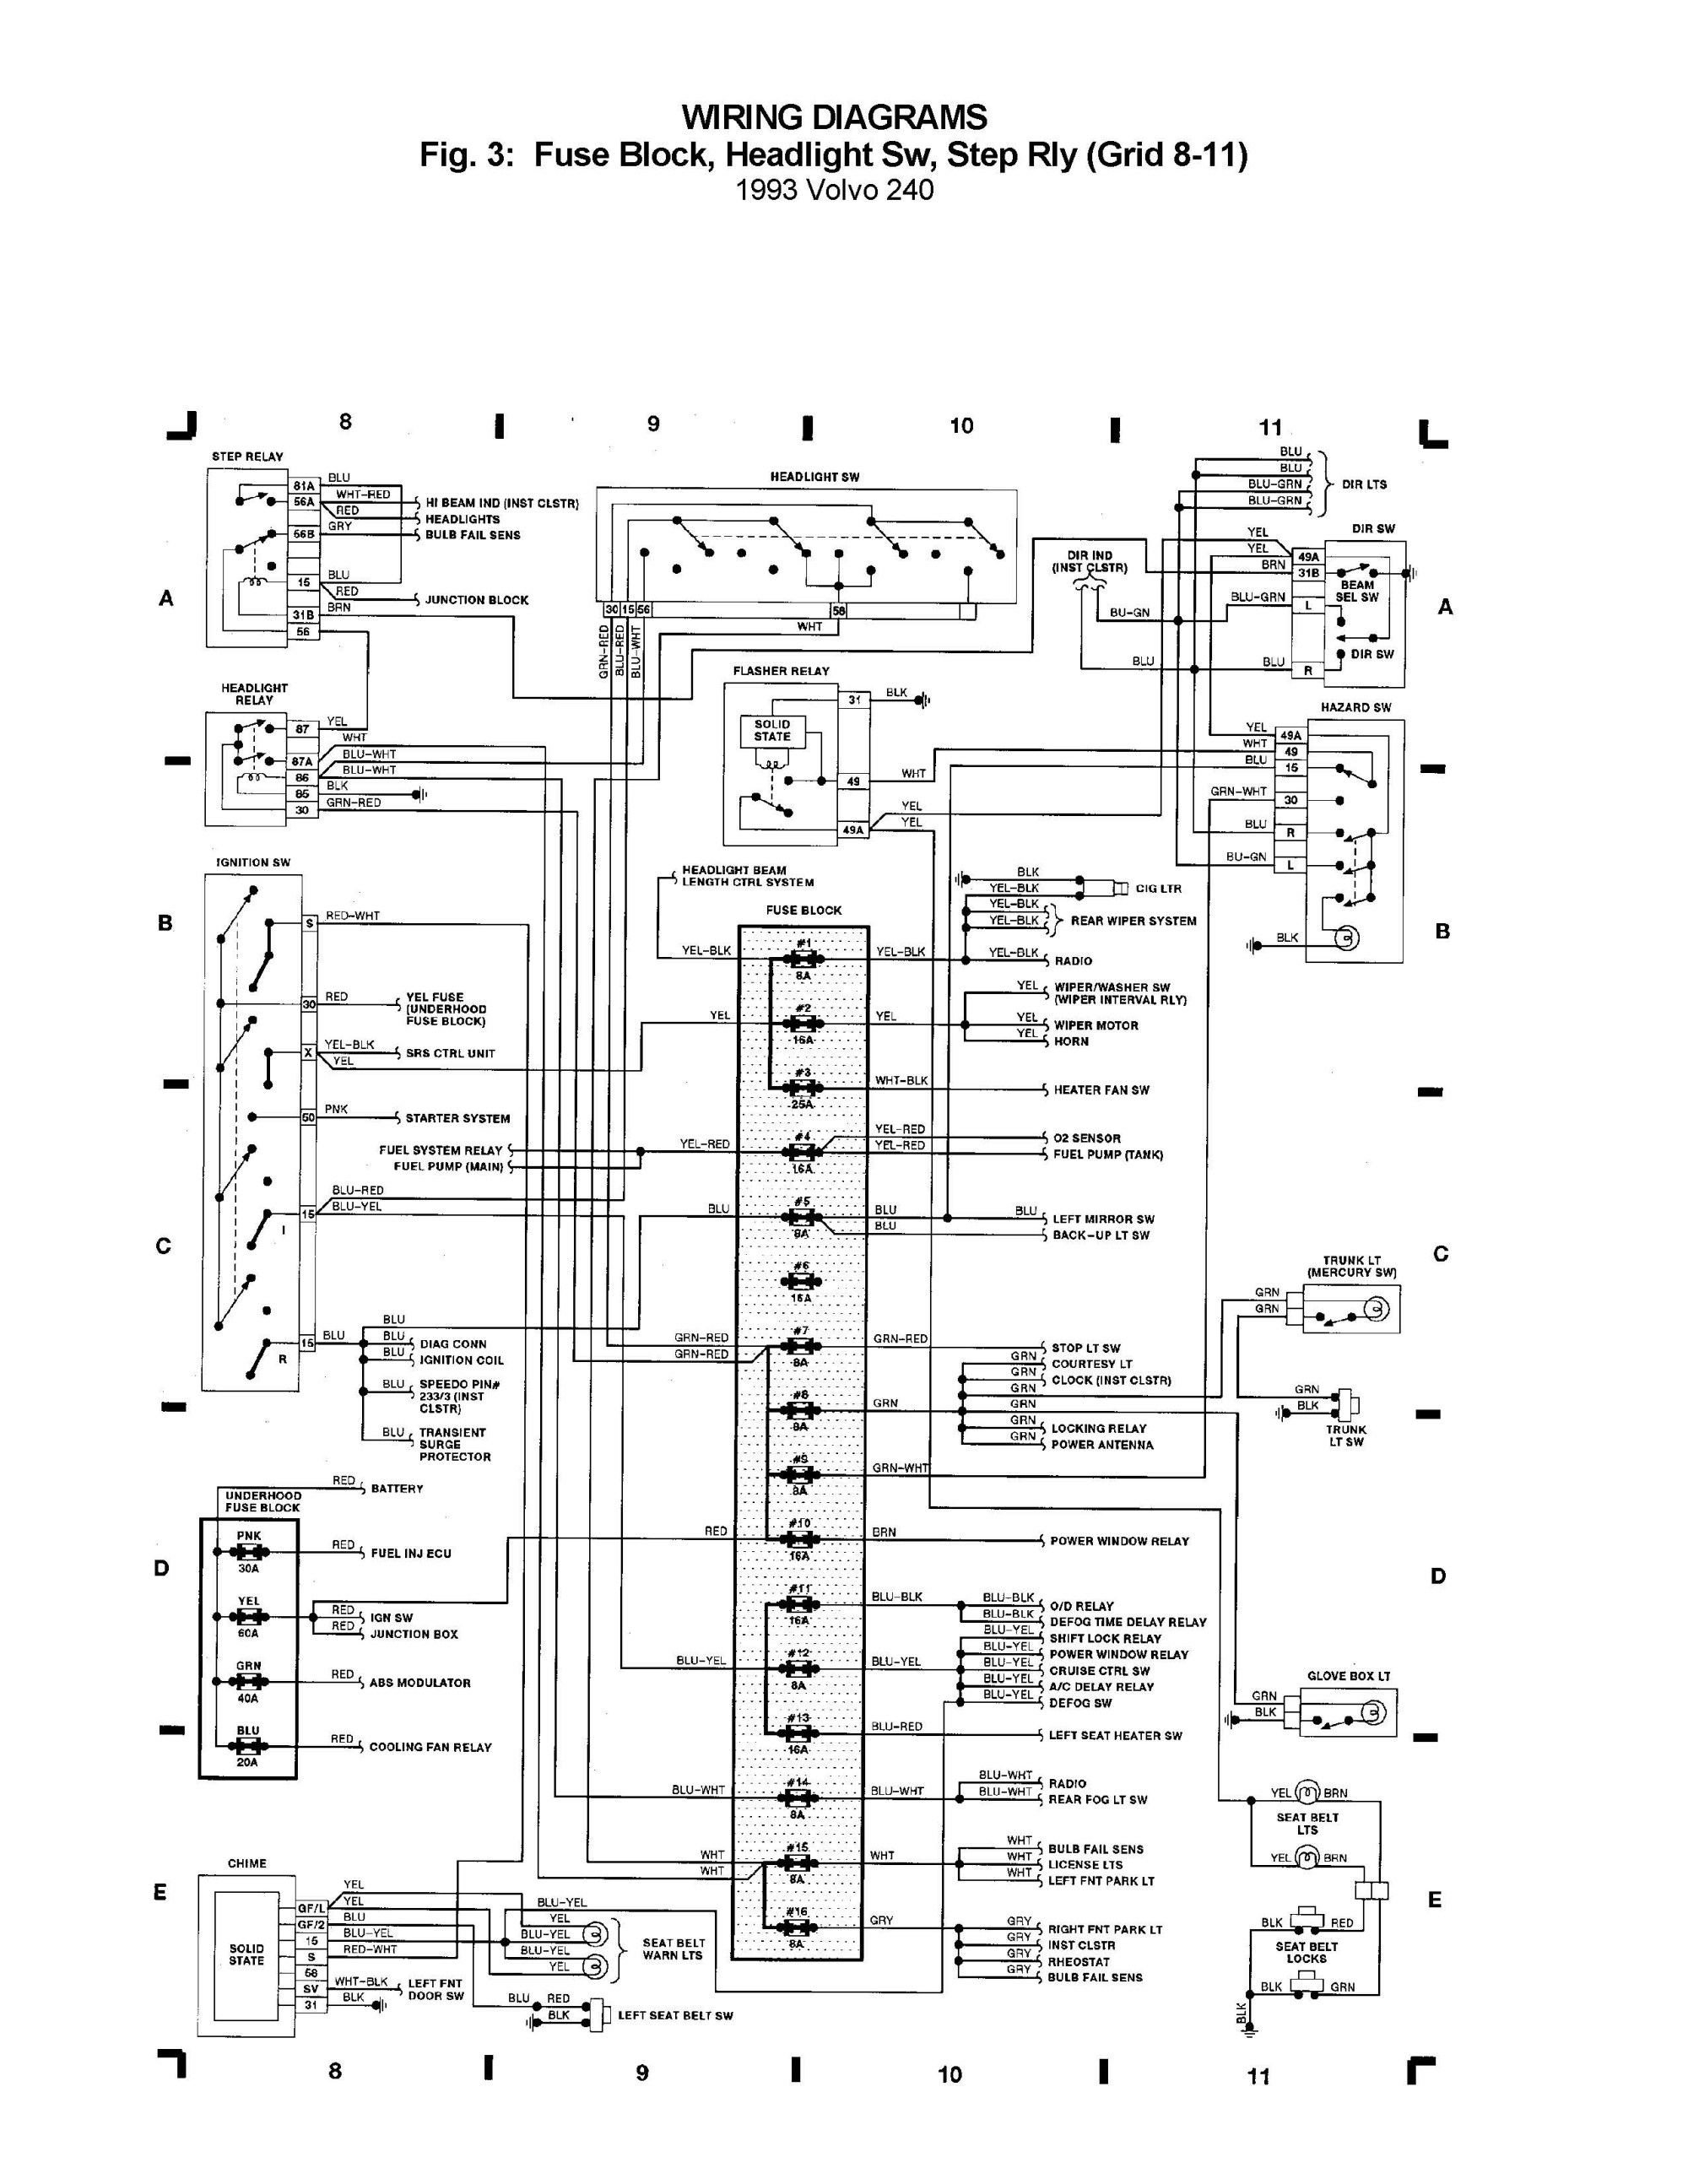 hight resolution of 78 volvo gle fuse box wiring diagram article review mix volvo 240 gl fuse box wiring